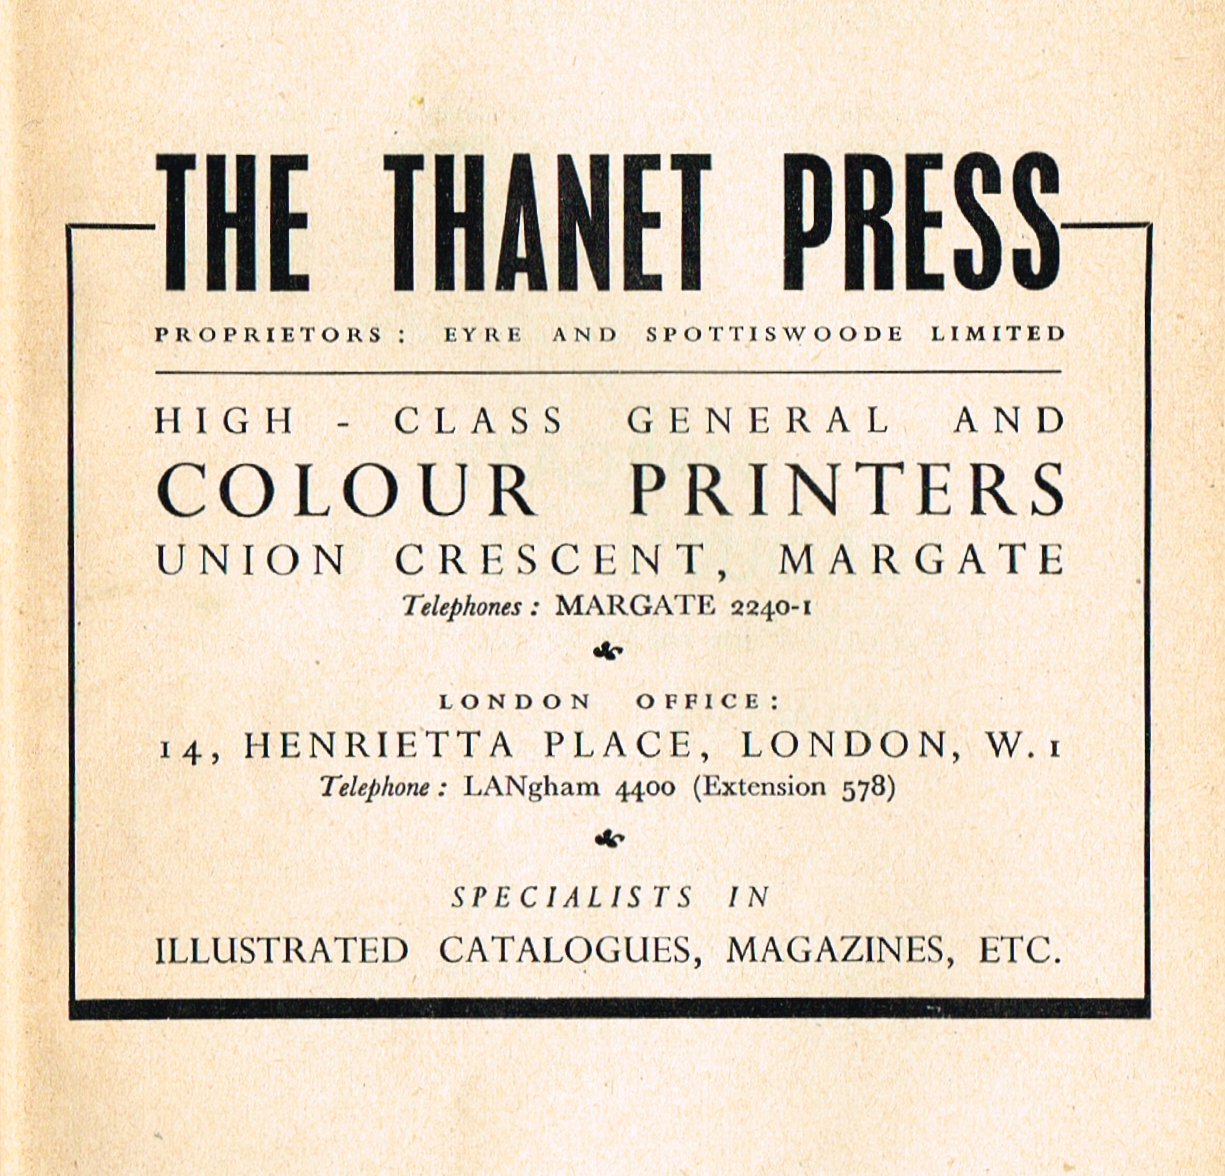 Advertisement for The Thanet Press